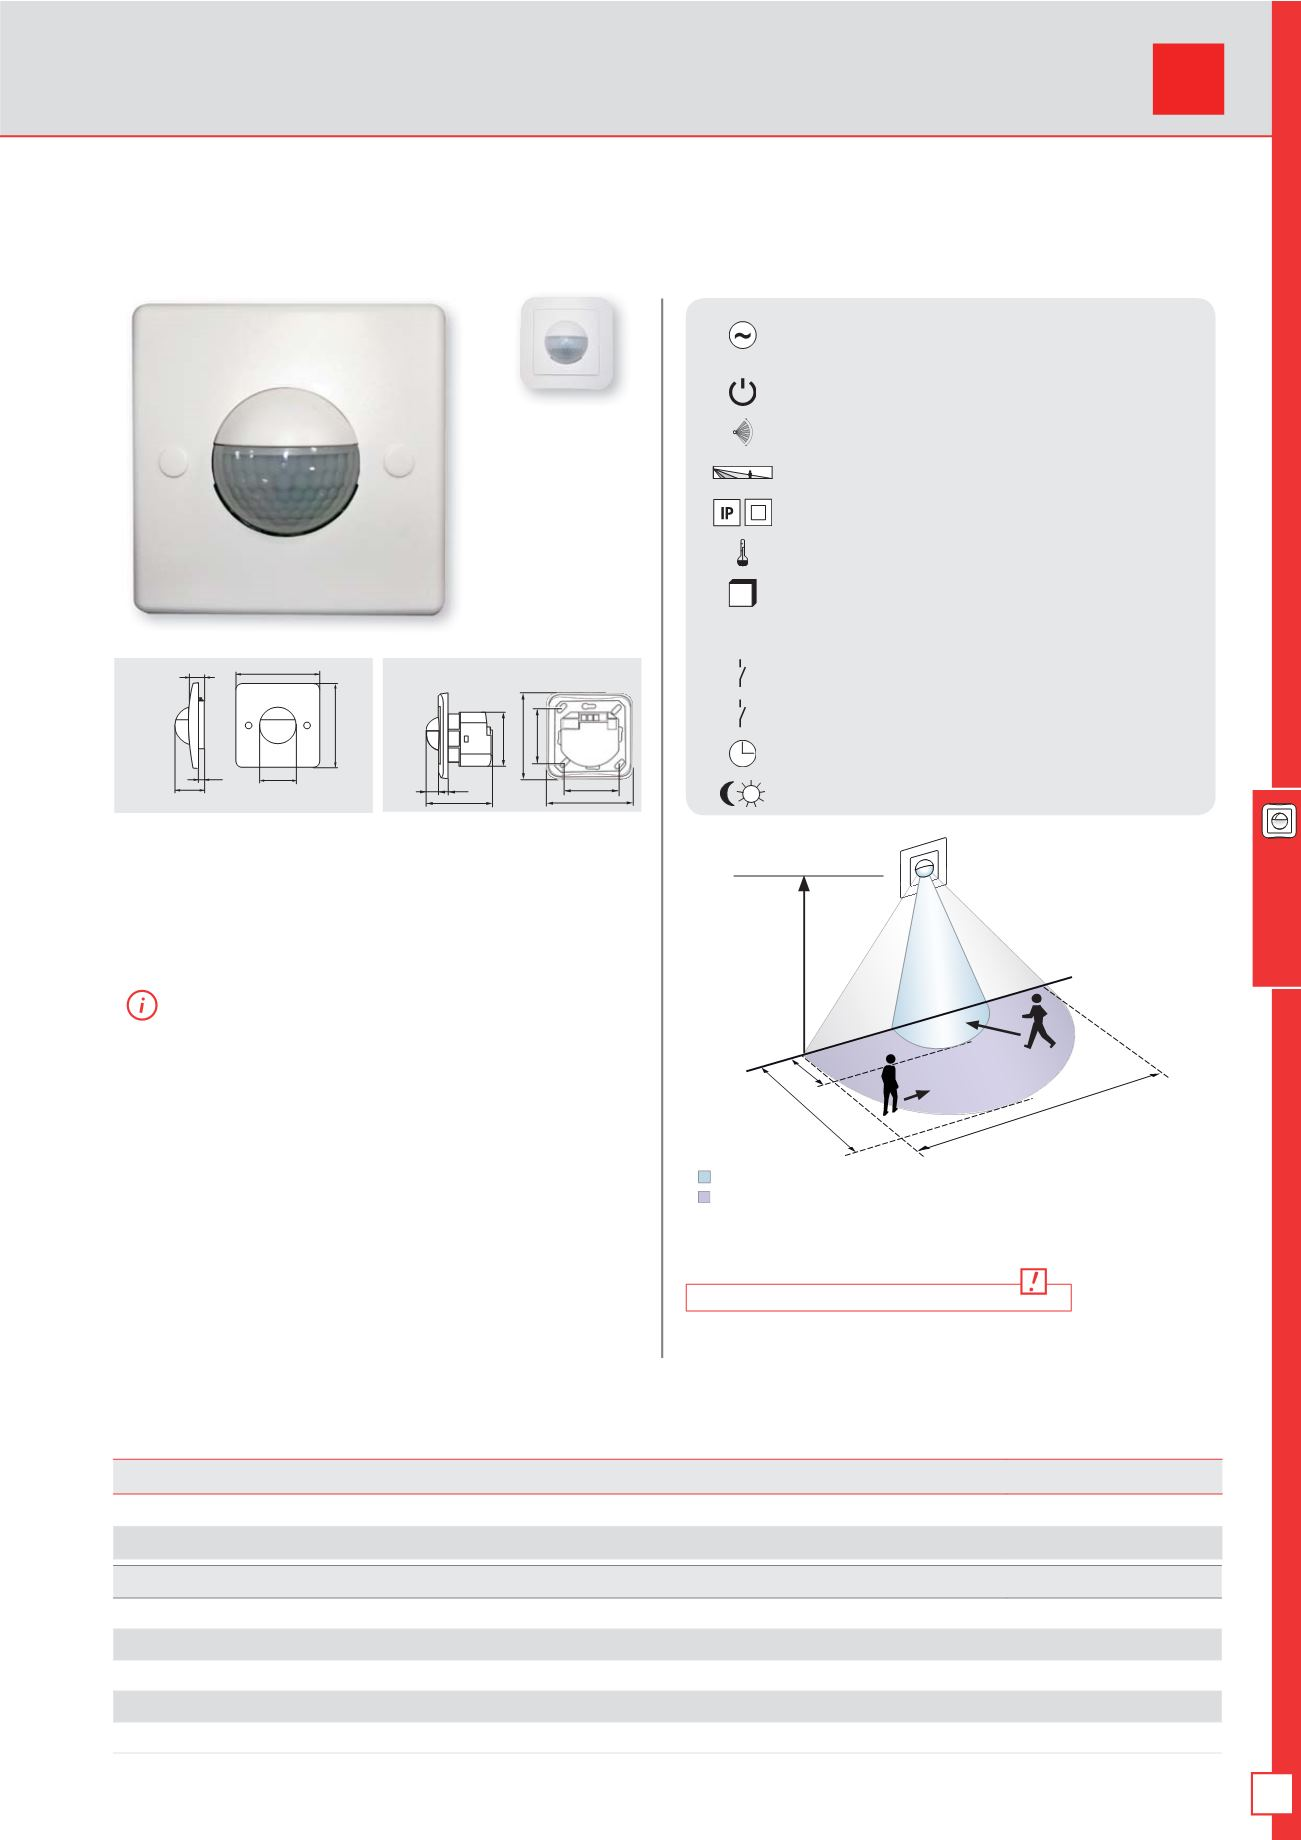 Beg Luxomat Occupancy And Motion Detectors Catalogue Sensor 2wire Install Diagram Page Background 121